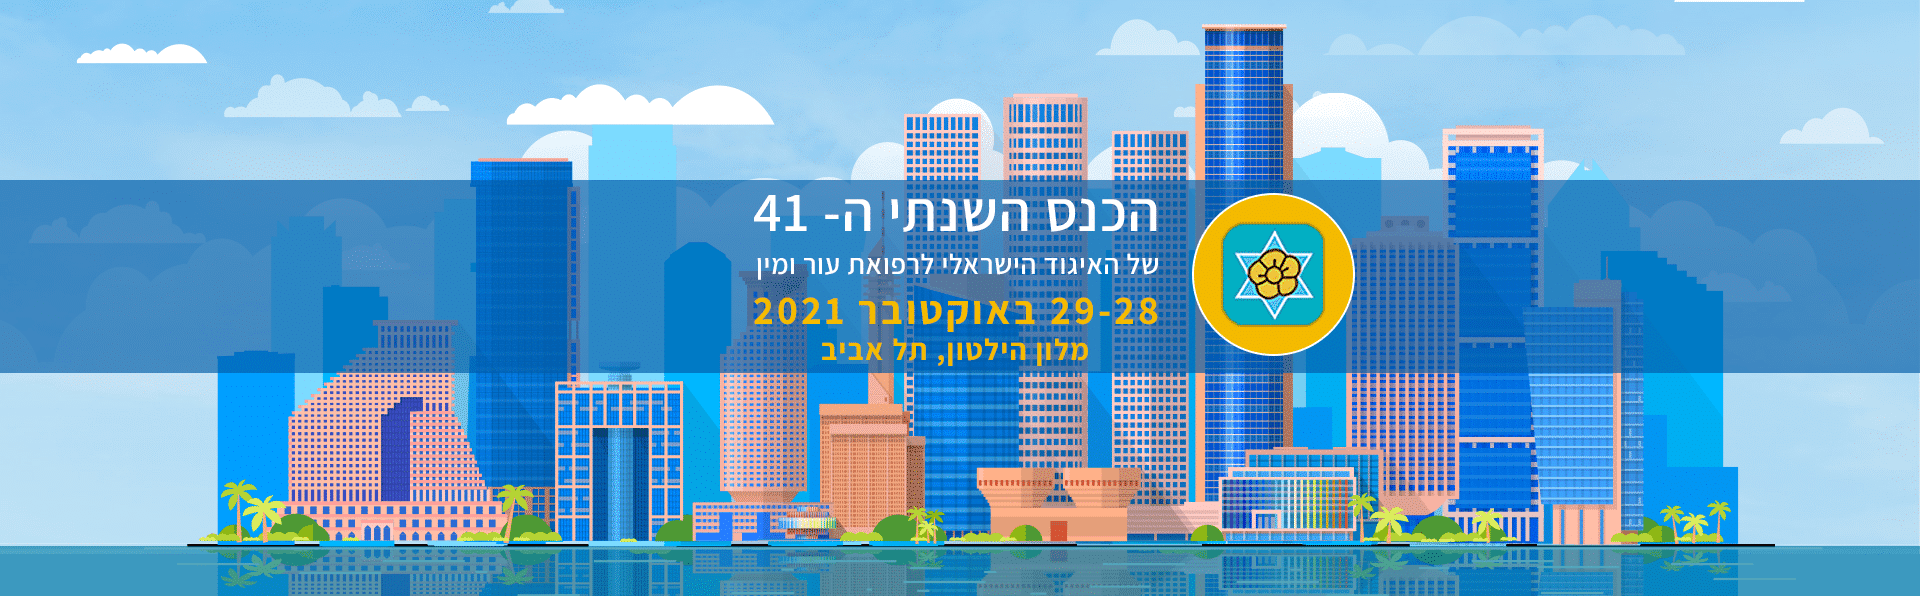 The 41st Annual Meeting of the Israel Society of Dermatology & Venereology